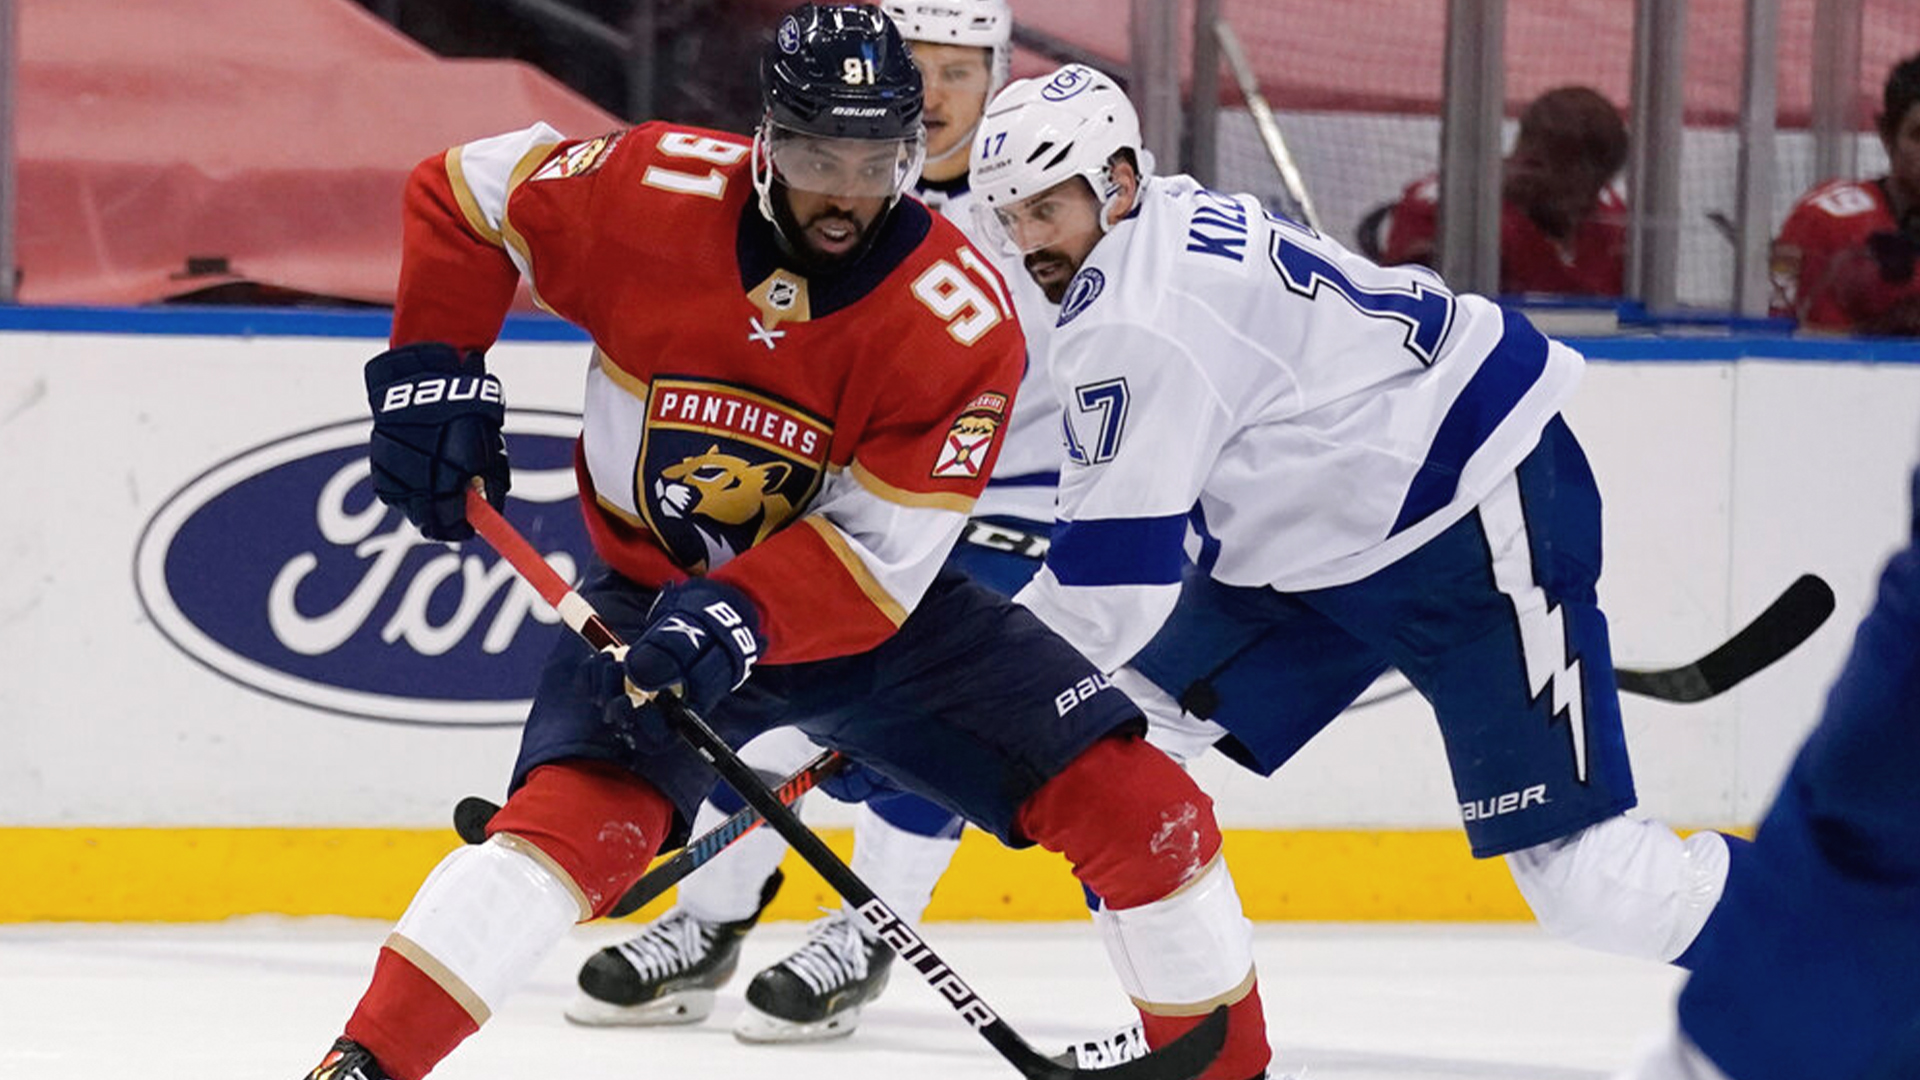 Panthers to host Lightning for first-ever all Florida playoff series | WFLA